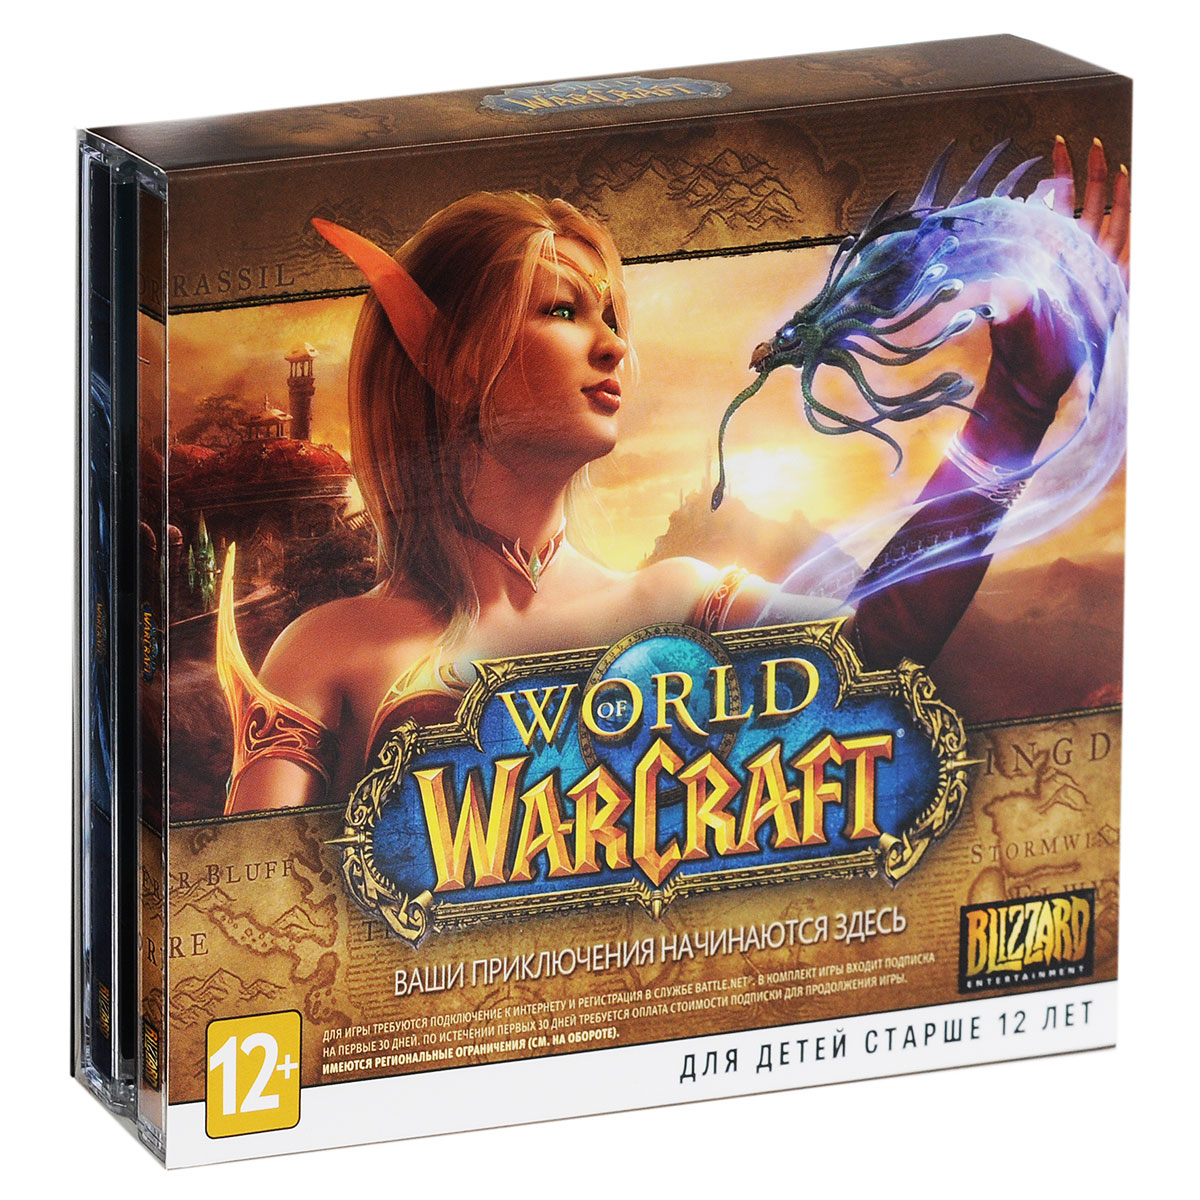 World of Warcraft Gold 30 дней (Jewel, 2 DVD)